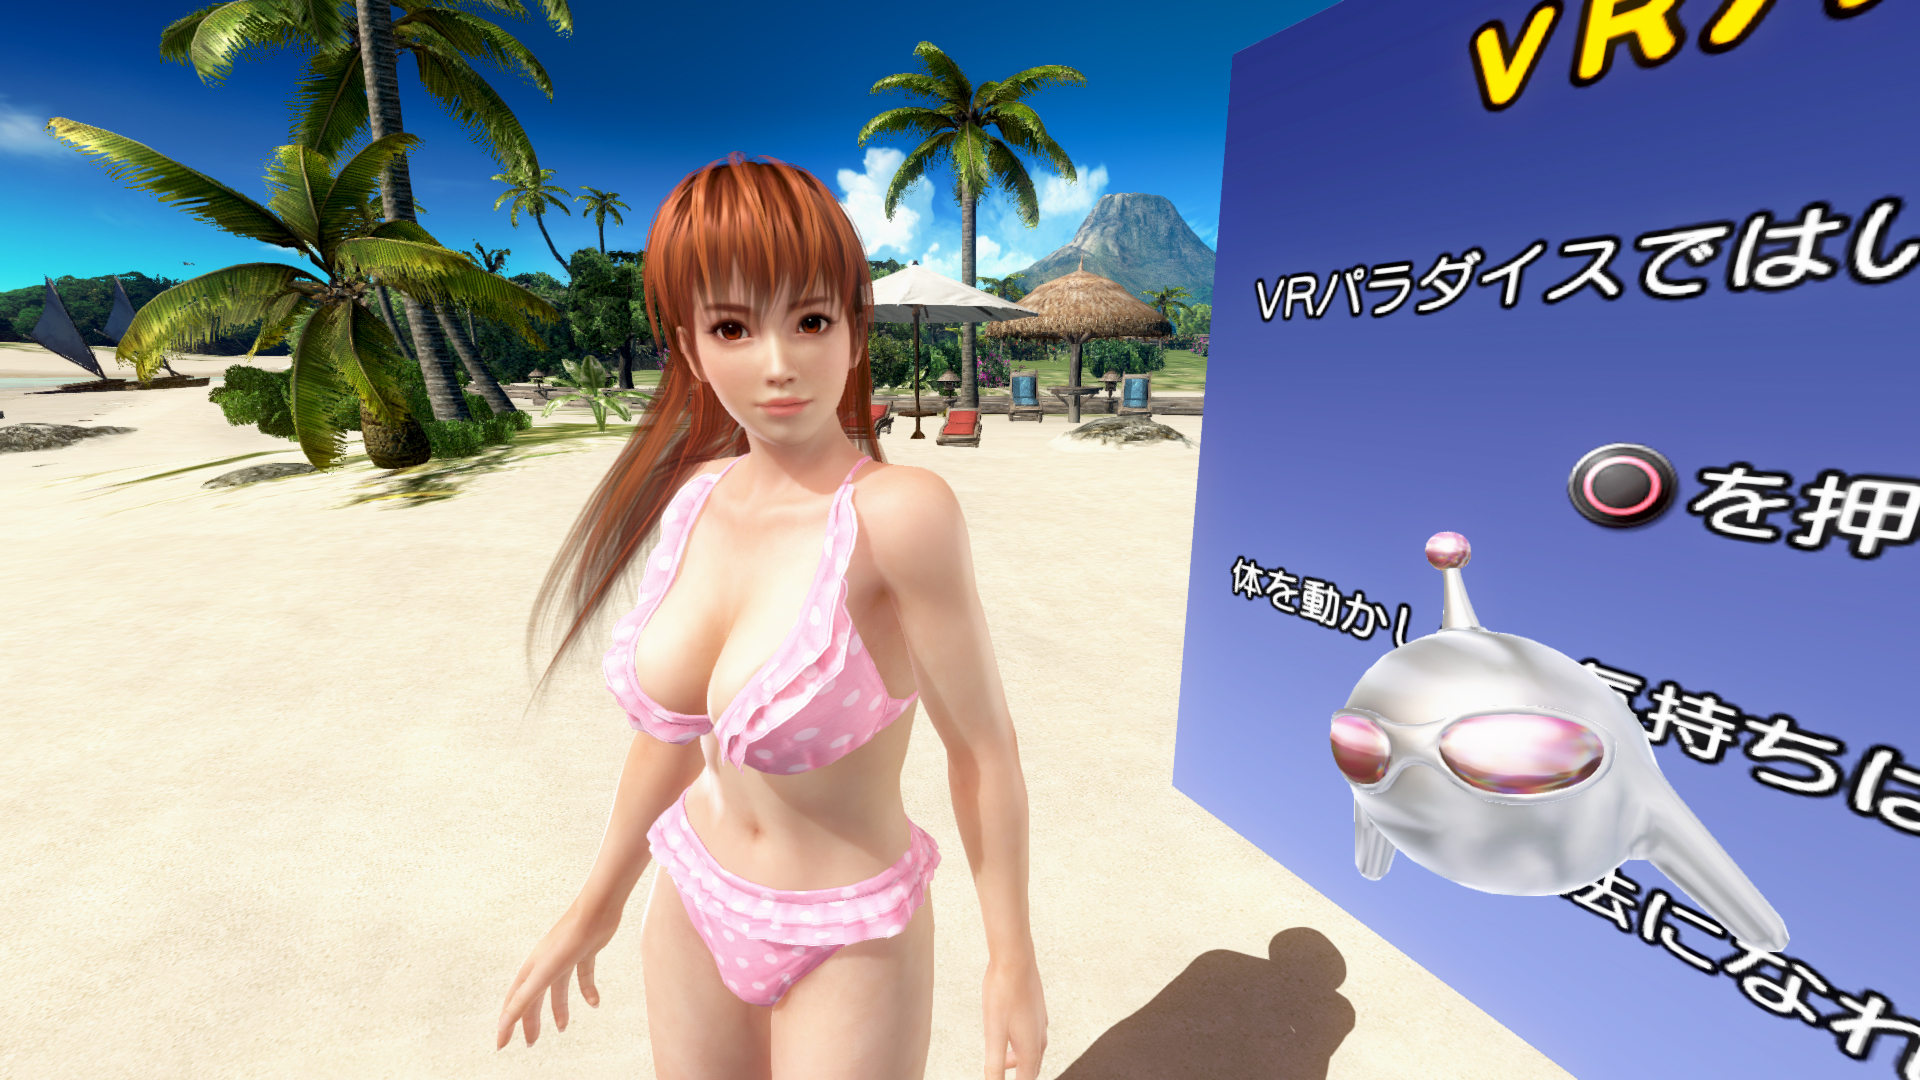 Dead Or Alive Xtreme 3 For Ps4 Gets New Vr Paradise Mode This October Dead Or Alive Xtreme 3 Fortune Forum Neoseeker Forums